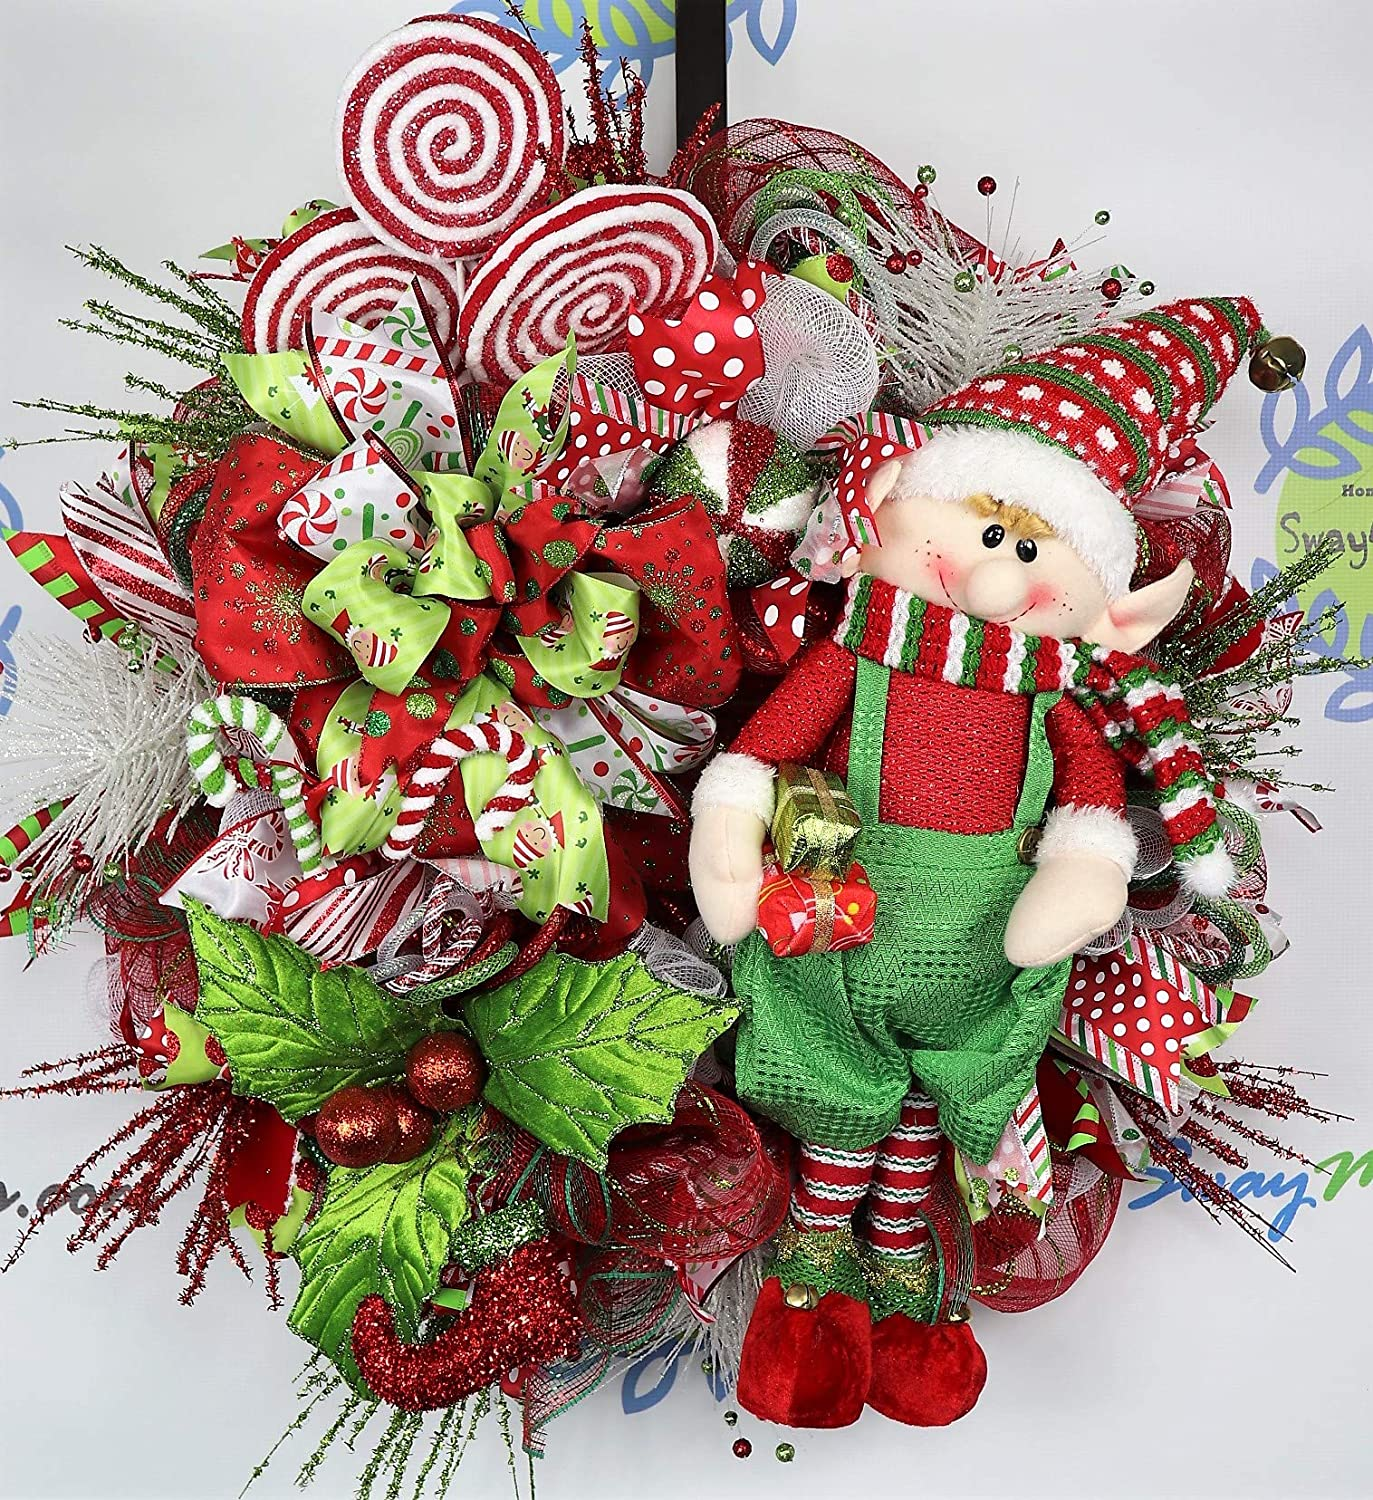 CANDY PEPPERMINT XMAS ORNAMENT FLORAL TREE DECOR STAR RED WHITE GREEN NEW WREATH